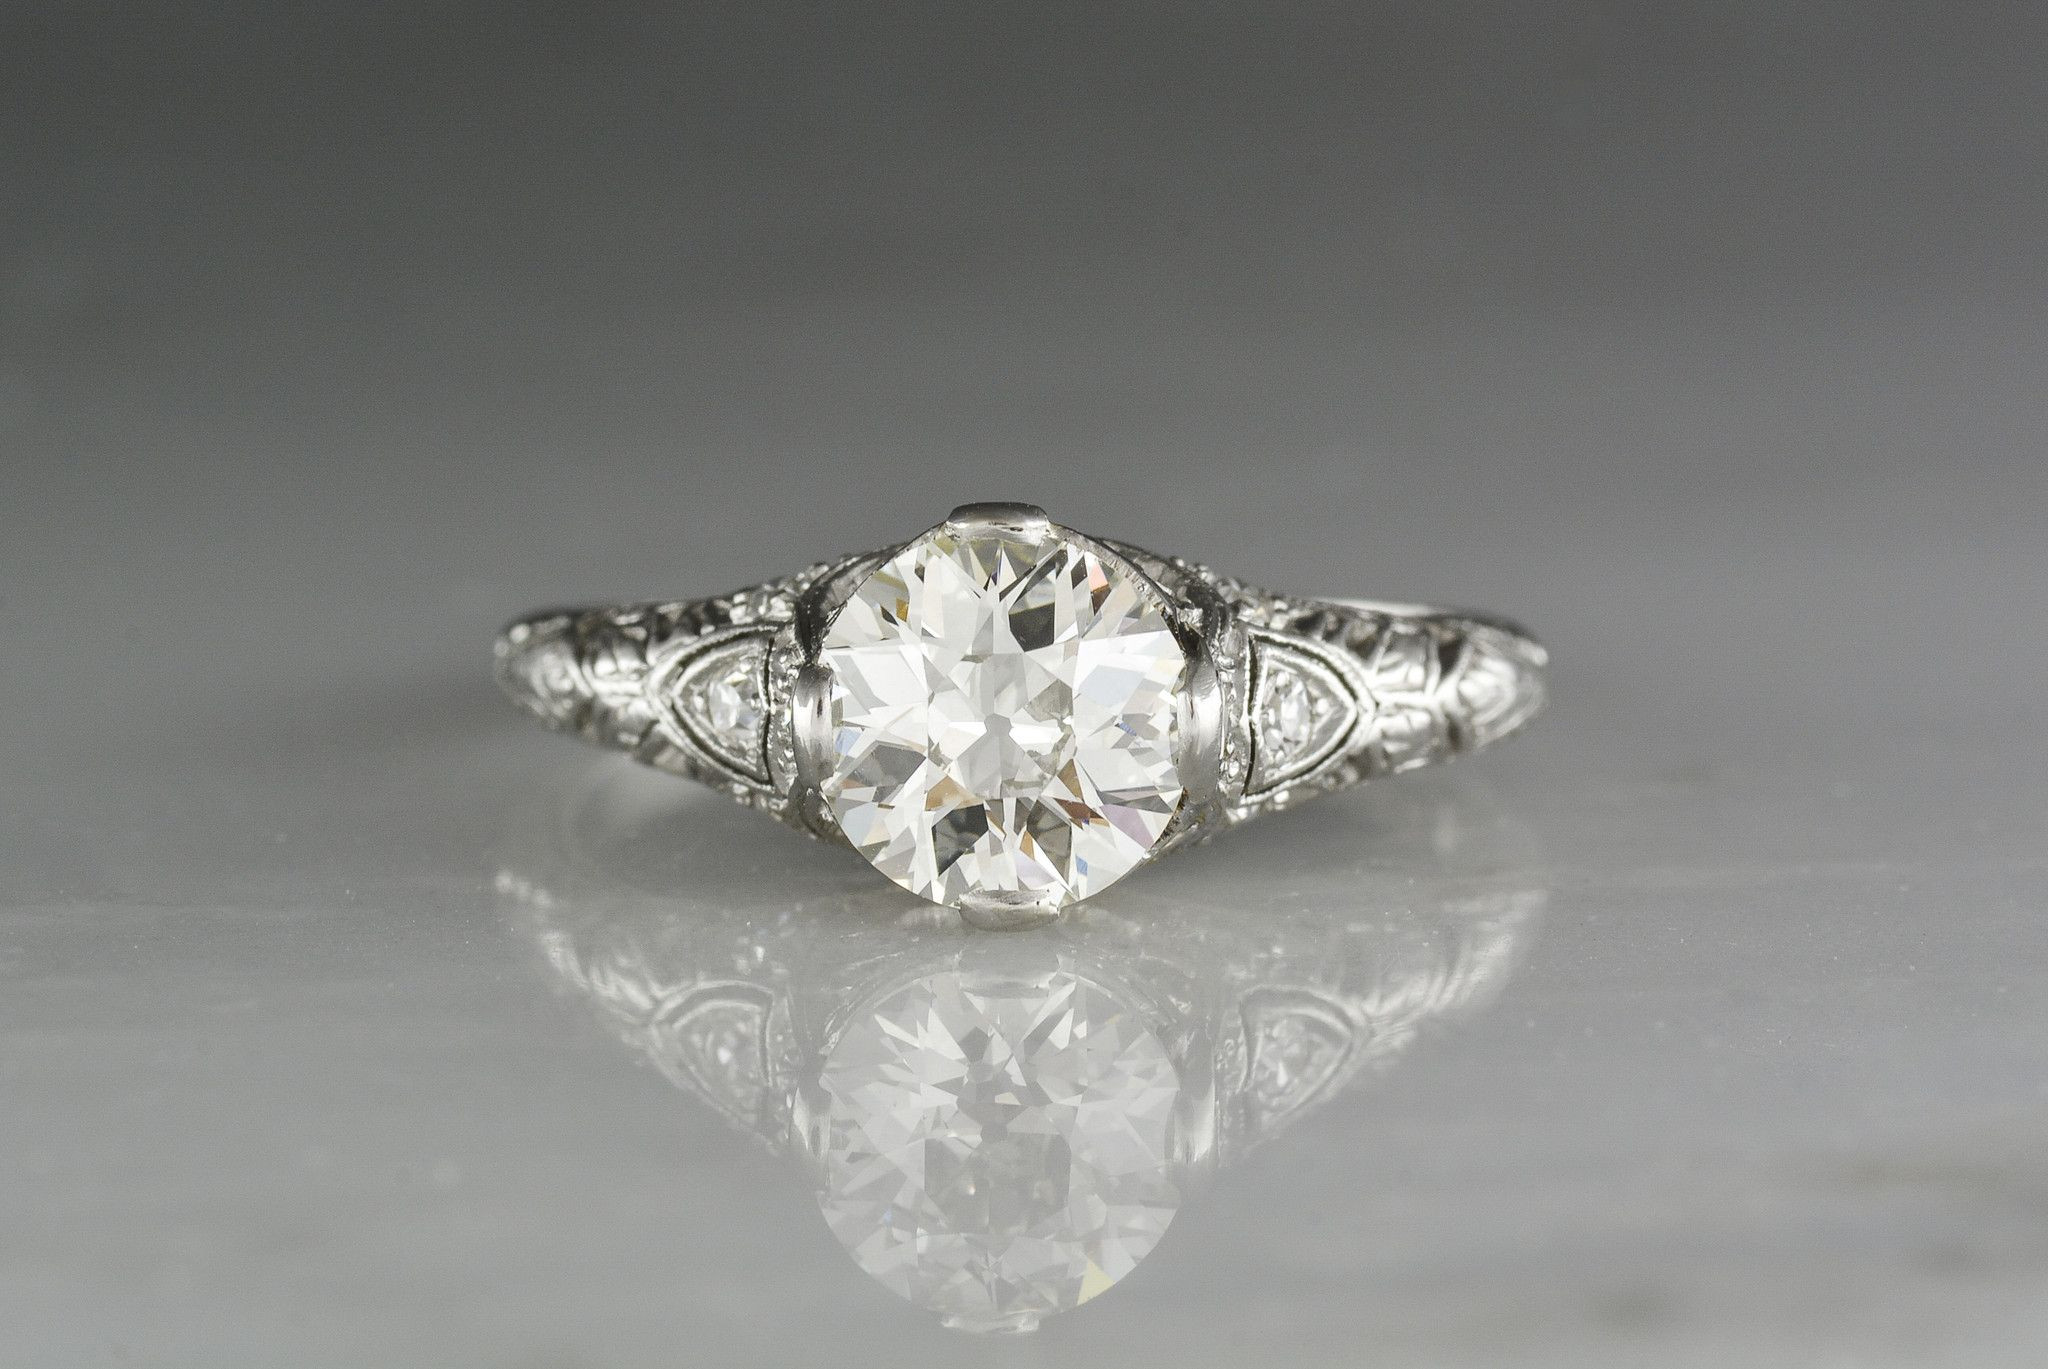 87c54c63c 1.20 Carat Old European Cut Diamond in Antique c. 1910 High Edwardian  Engagement Ring from Pebble and Polish